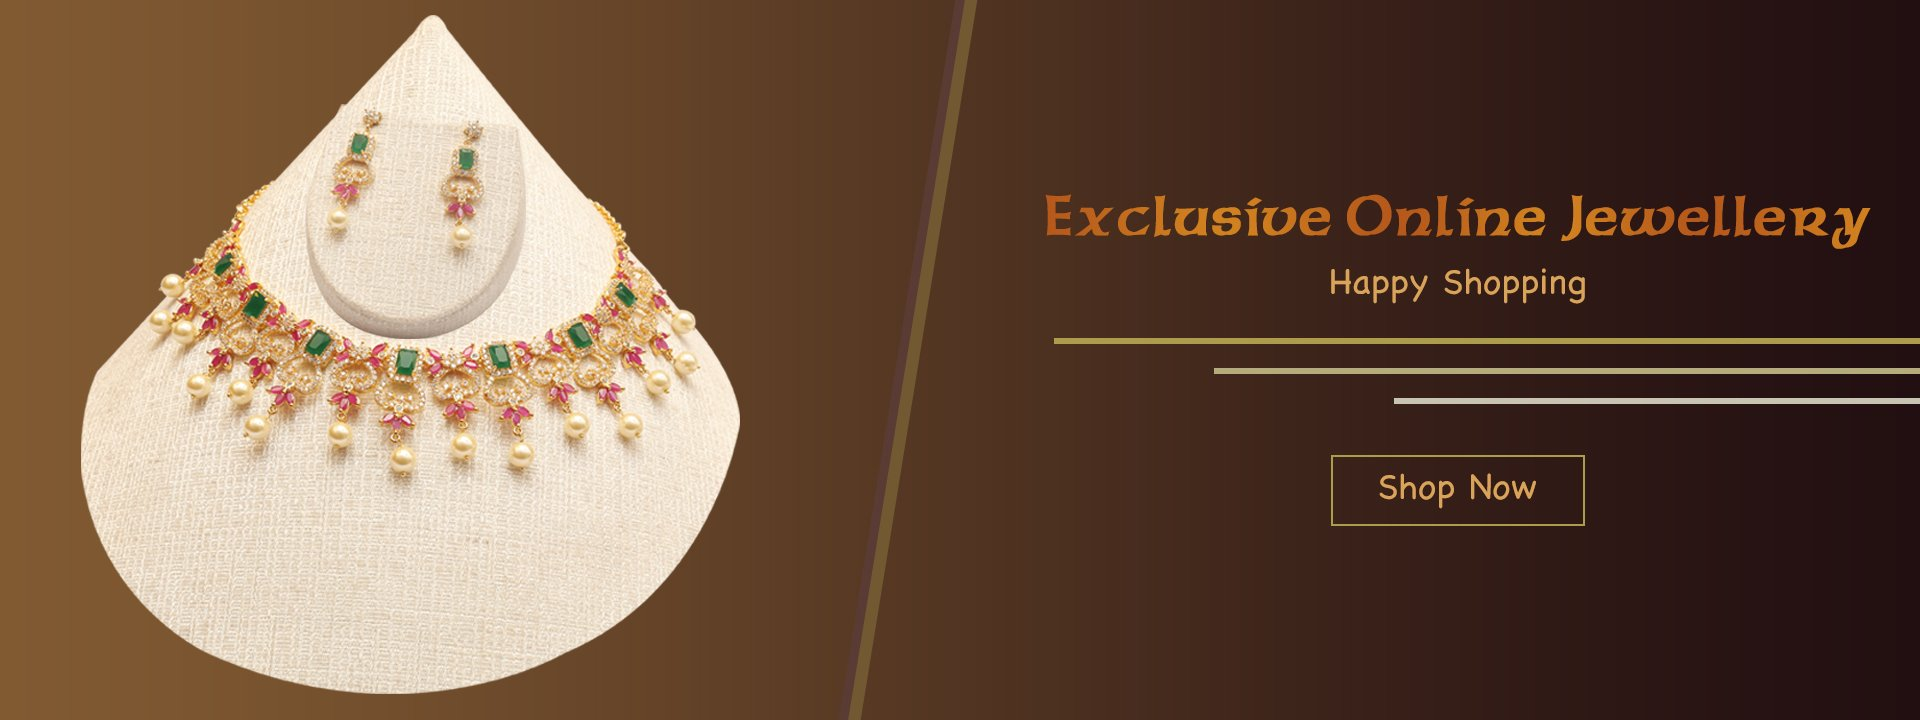 20% OFFER & EXCLUSIVE ONLINE JEWELLERY